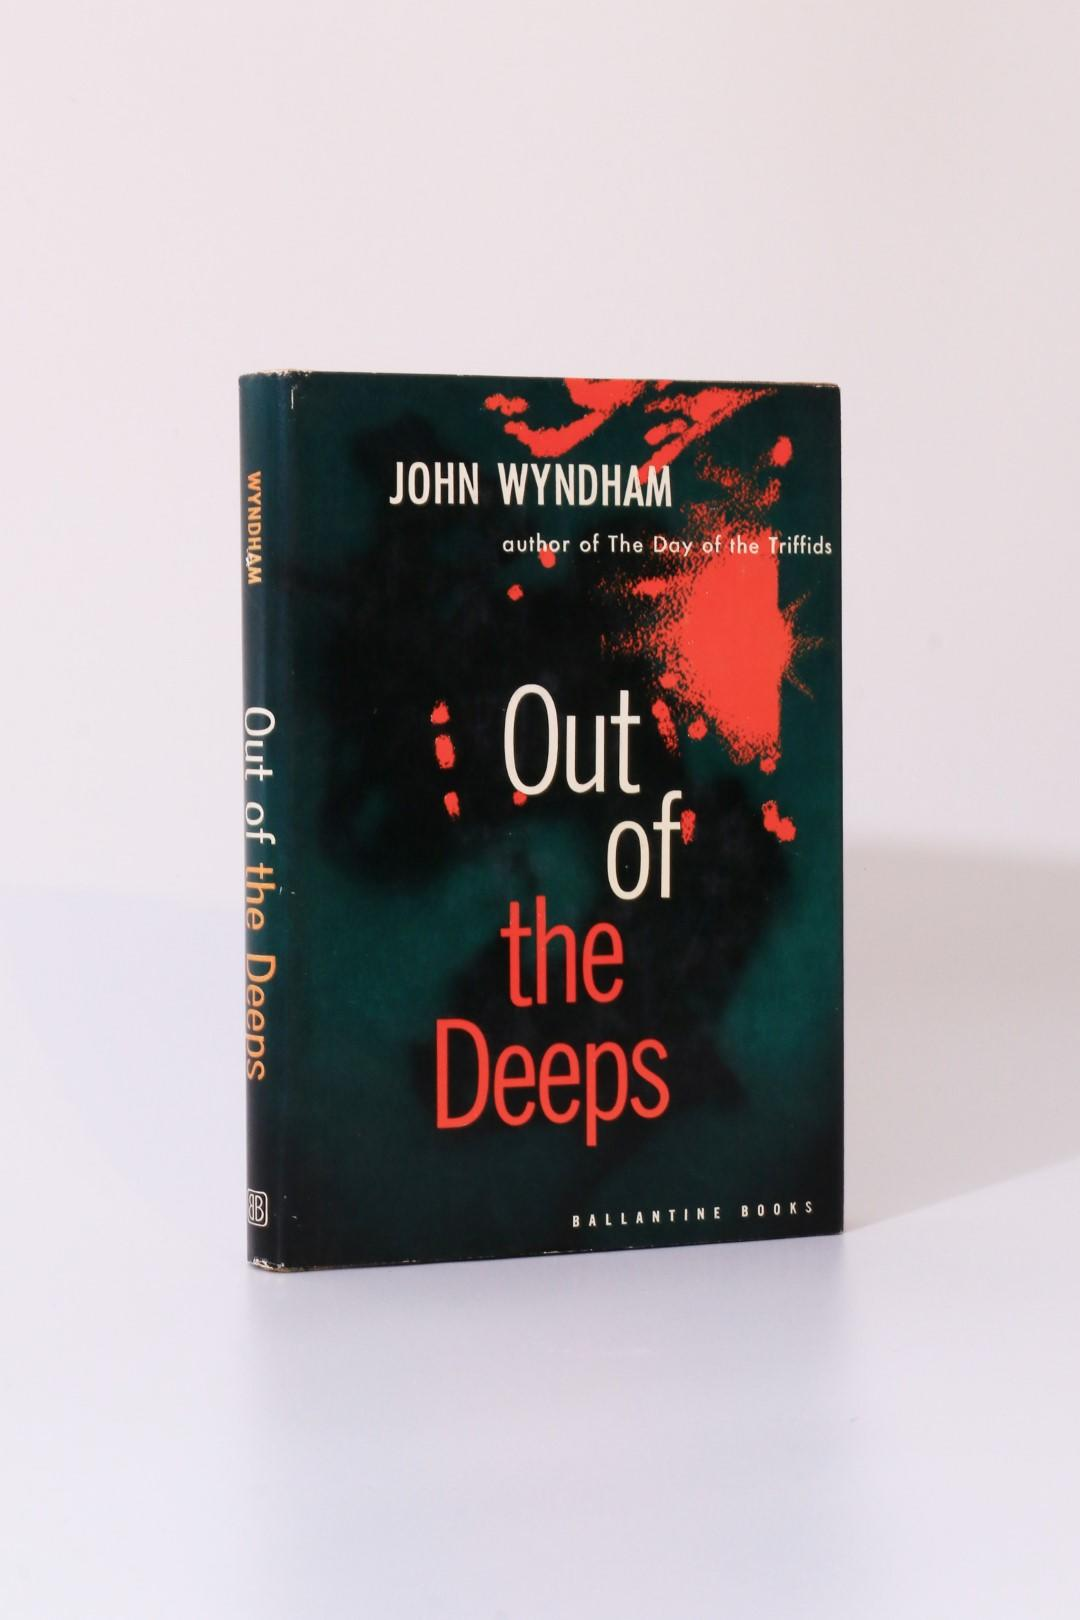 John Wyndham - Out of the Deeps - Ballantine Books, 1953, First Edition.